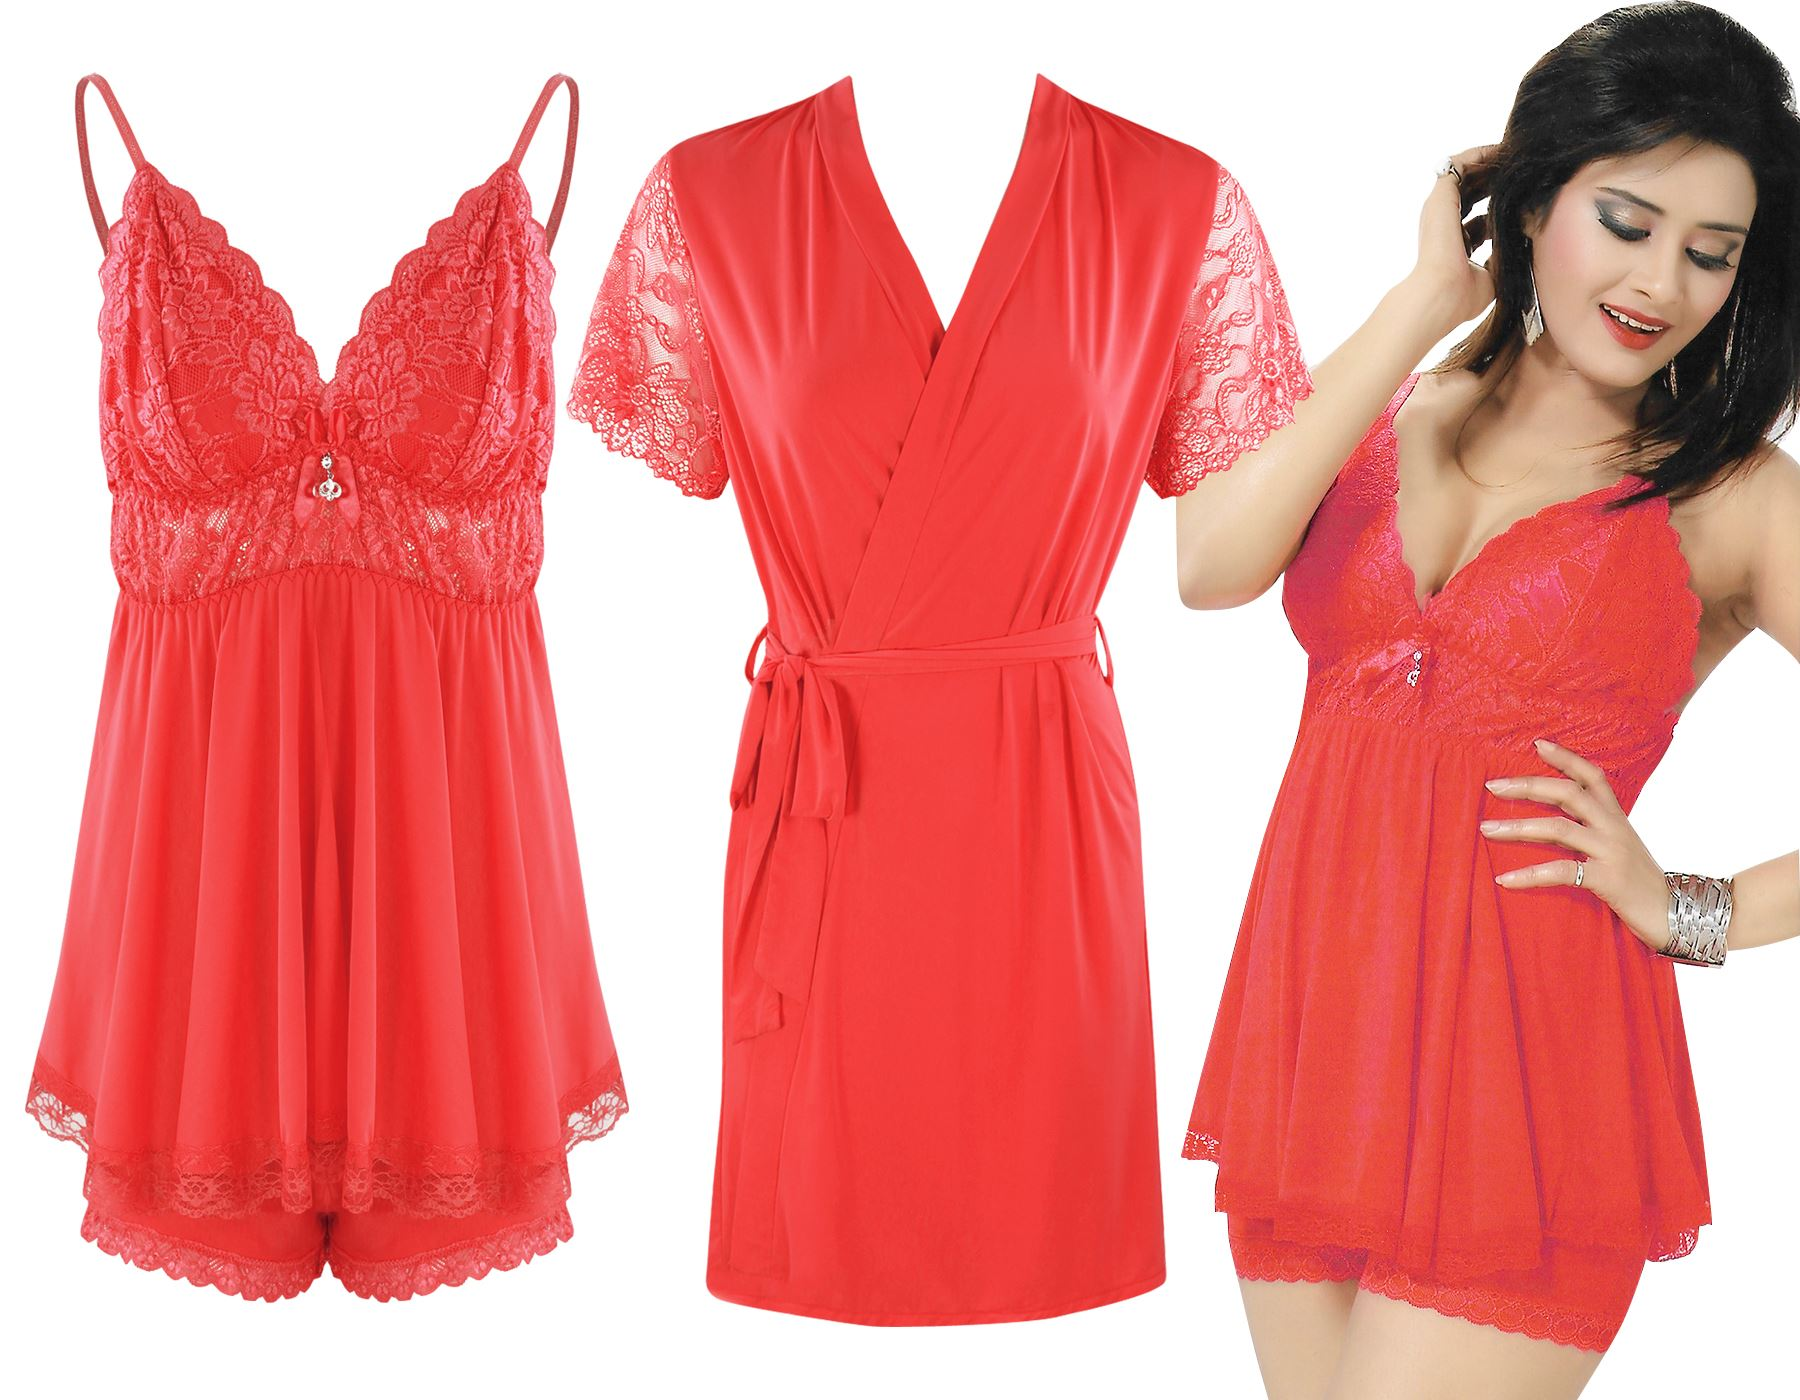 Color: Red 3 Piece Satin Shorts Chemise With Robe Size: One Size: Regular (8-14)